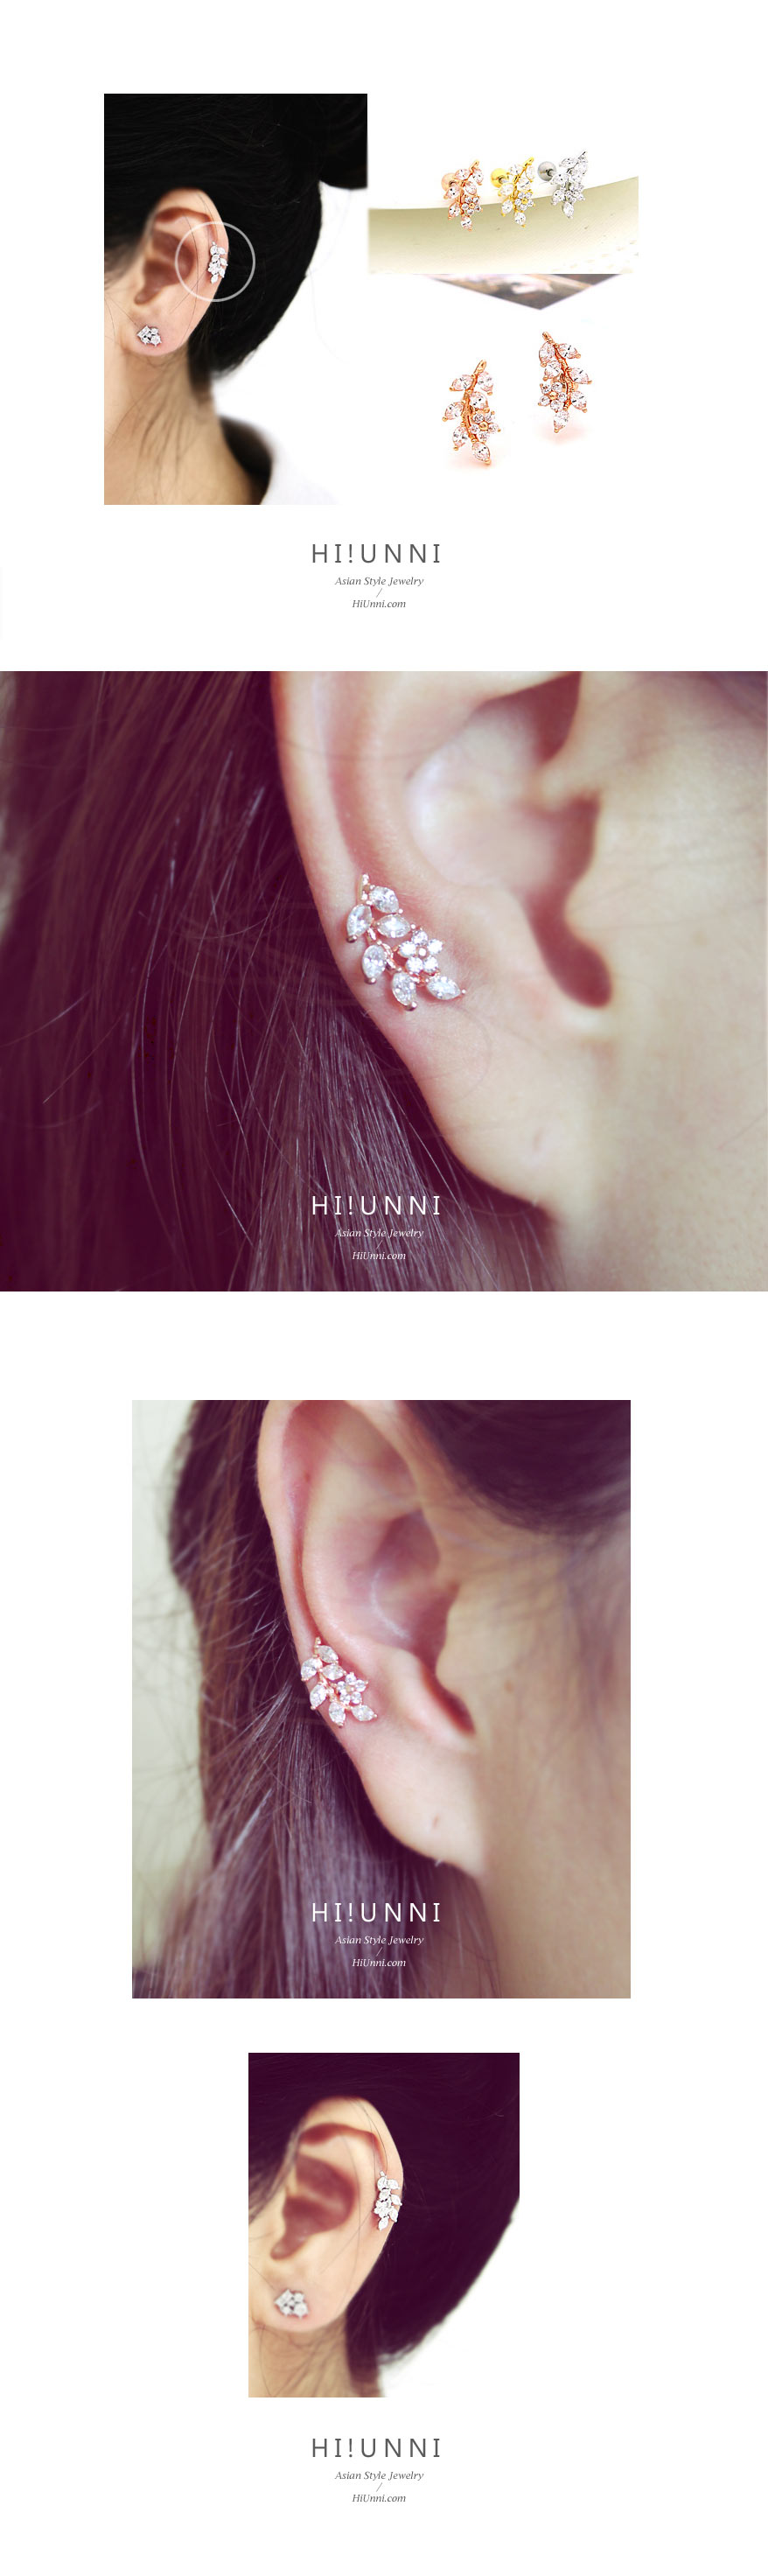 ear_studs_piercing_cartilage_earrings_16g_316l_surgical_stainless_steel_korean_asian_style_jewelry_barbell_rose_gold_helix_conch_labret_leaf_04